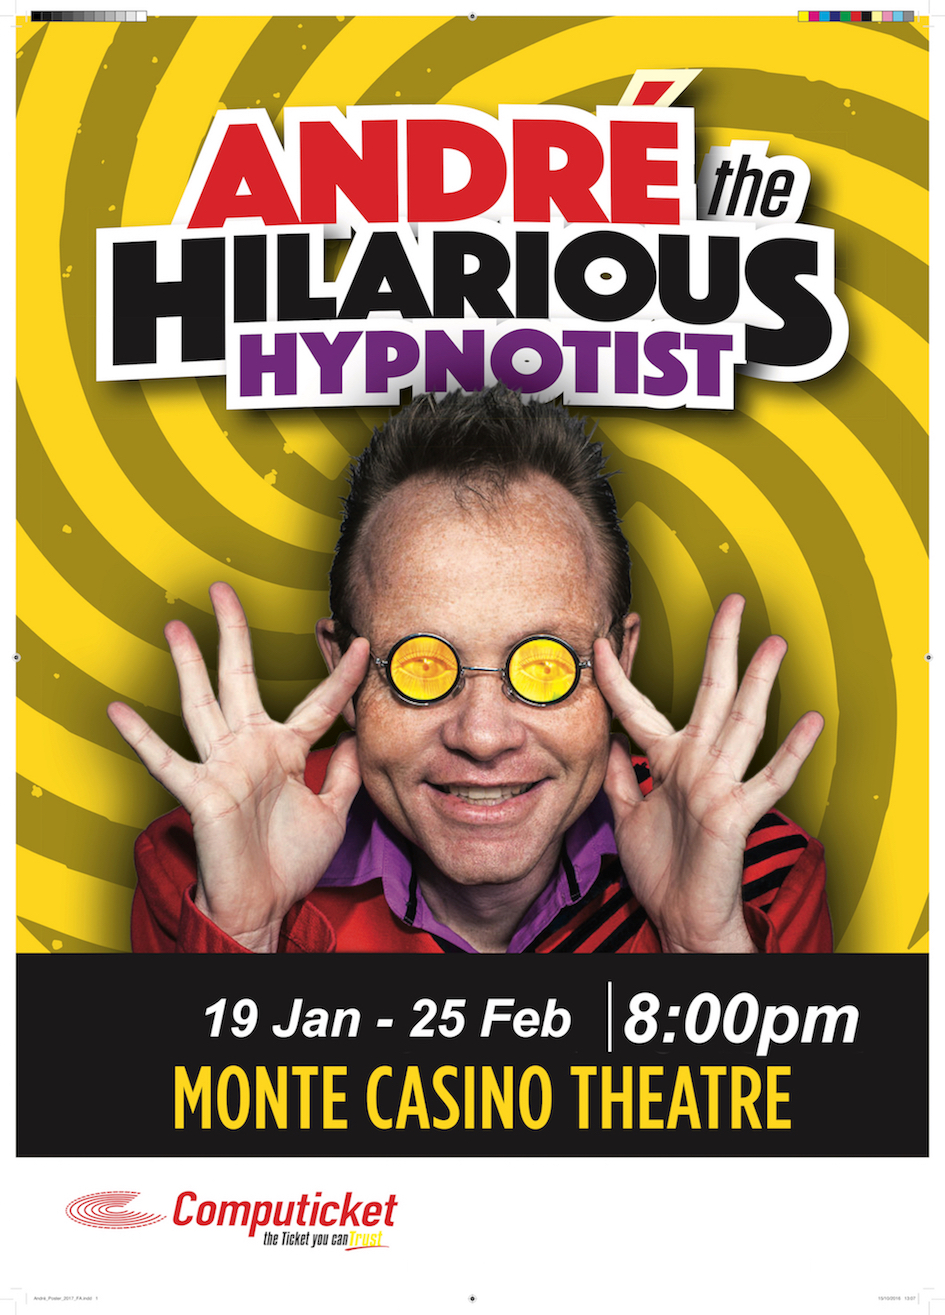 HILARIOUS HYPNOTIST CELEBRATES 25 YEARS